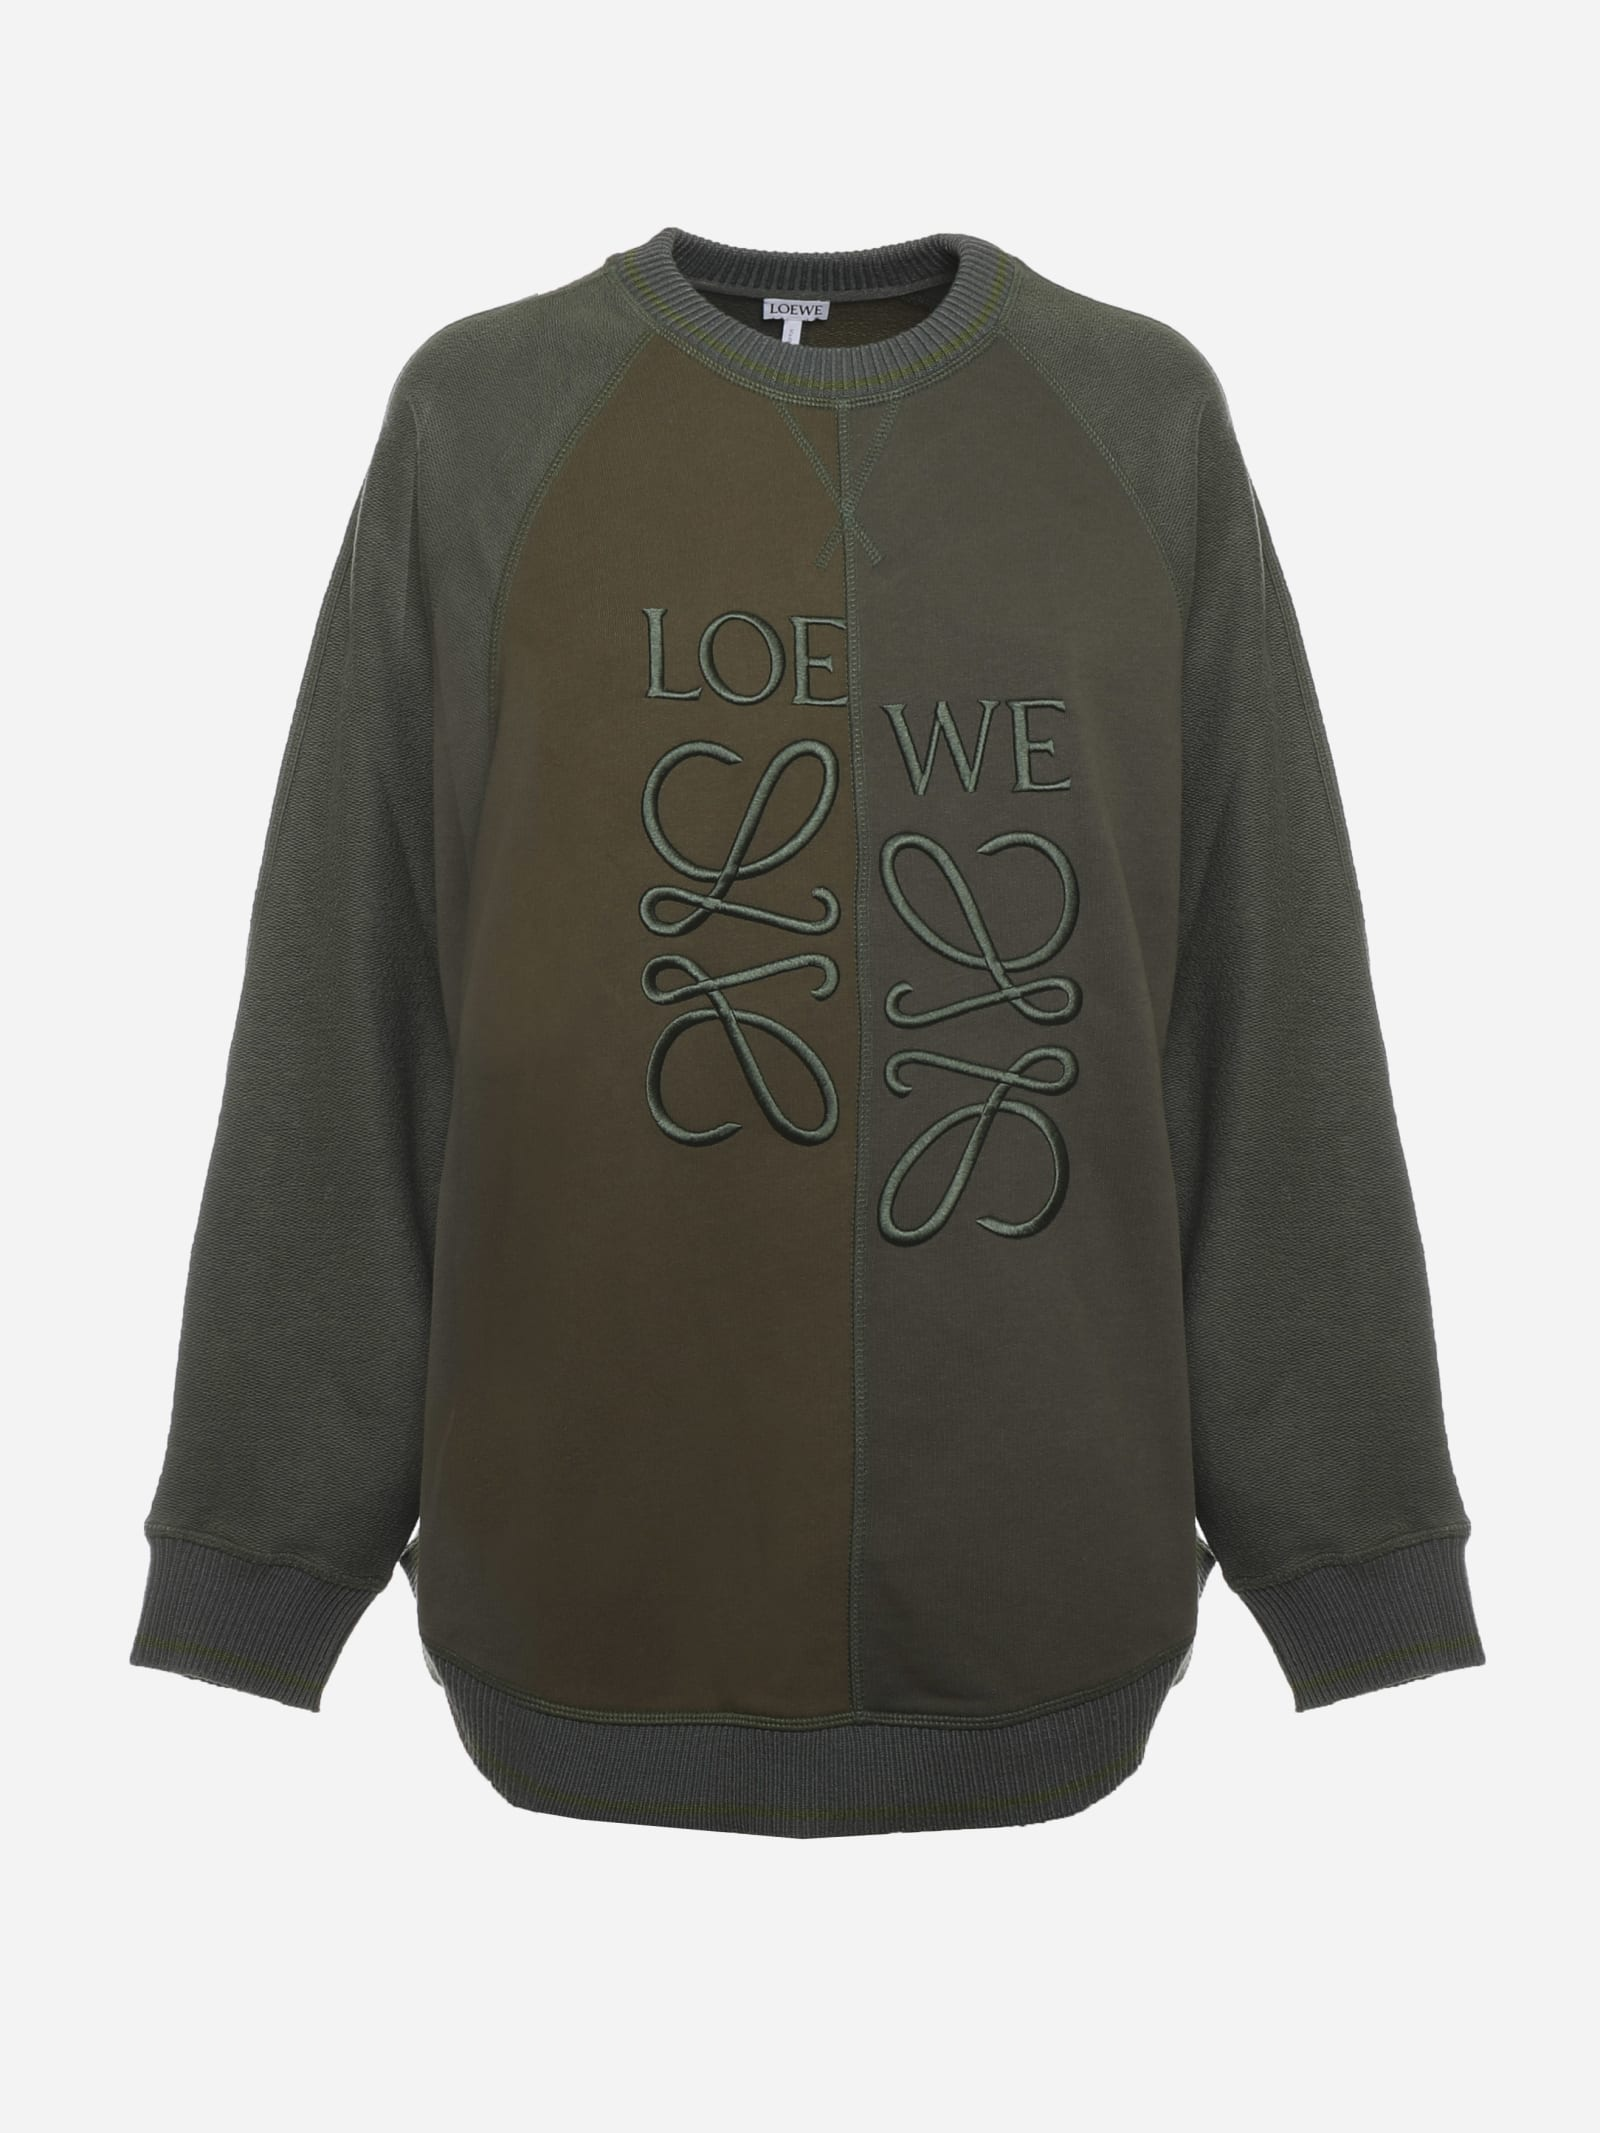 Loewe Cottons ANAGRAM COTTON SWEATSHIRT